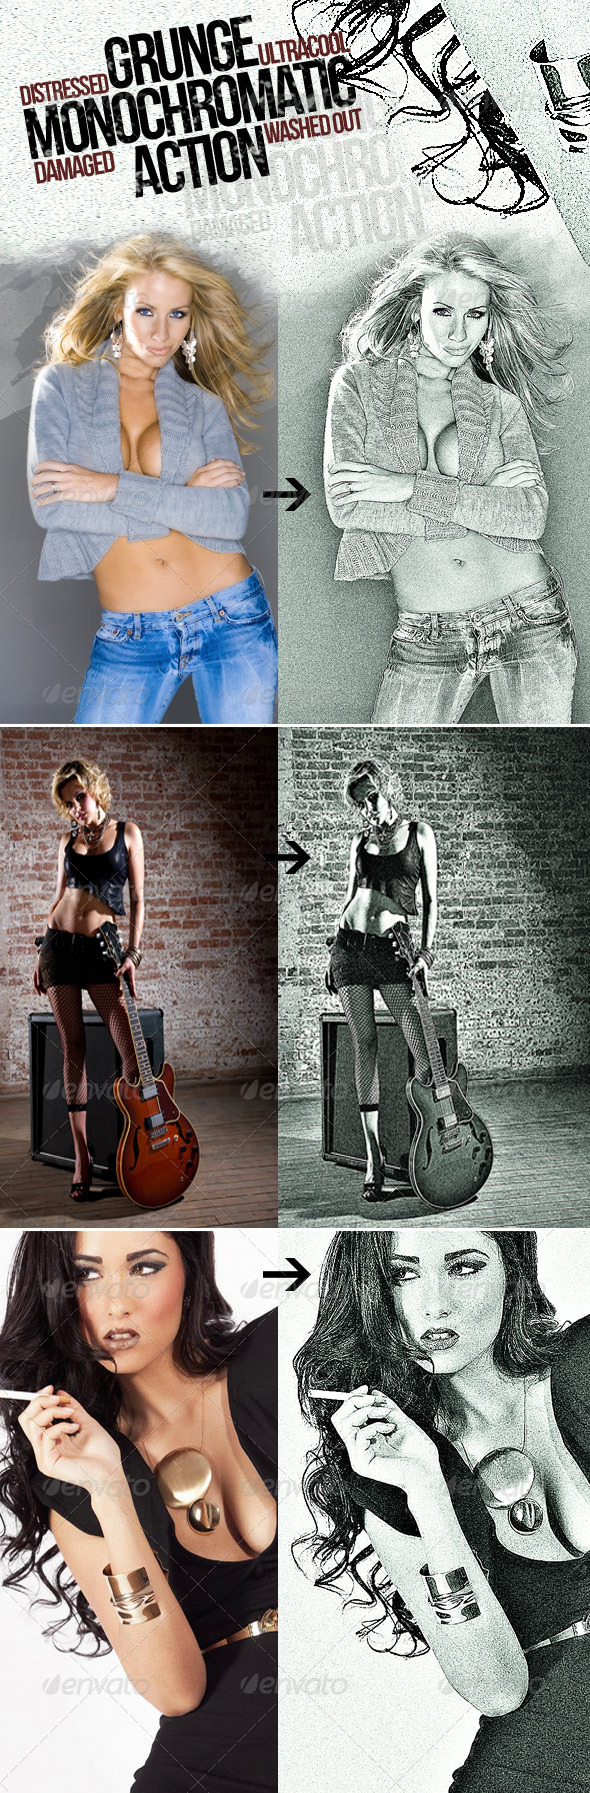 GraphicRiver Photoshop Action Grunge Monochromatic 3538078